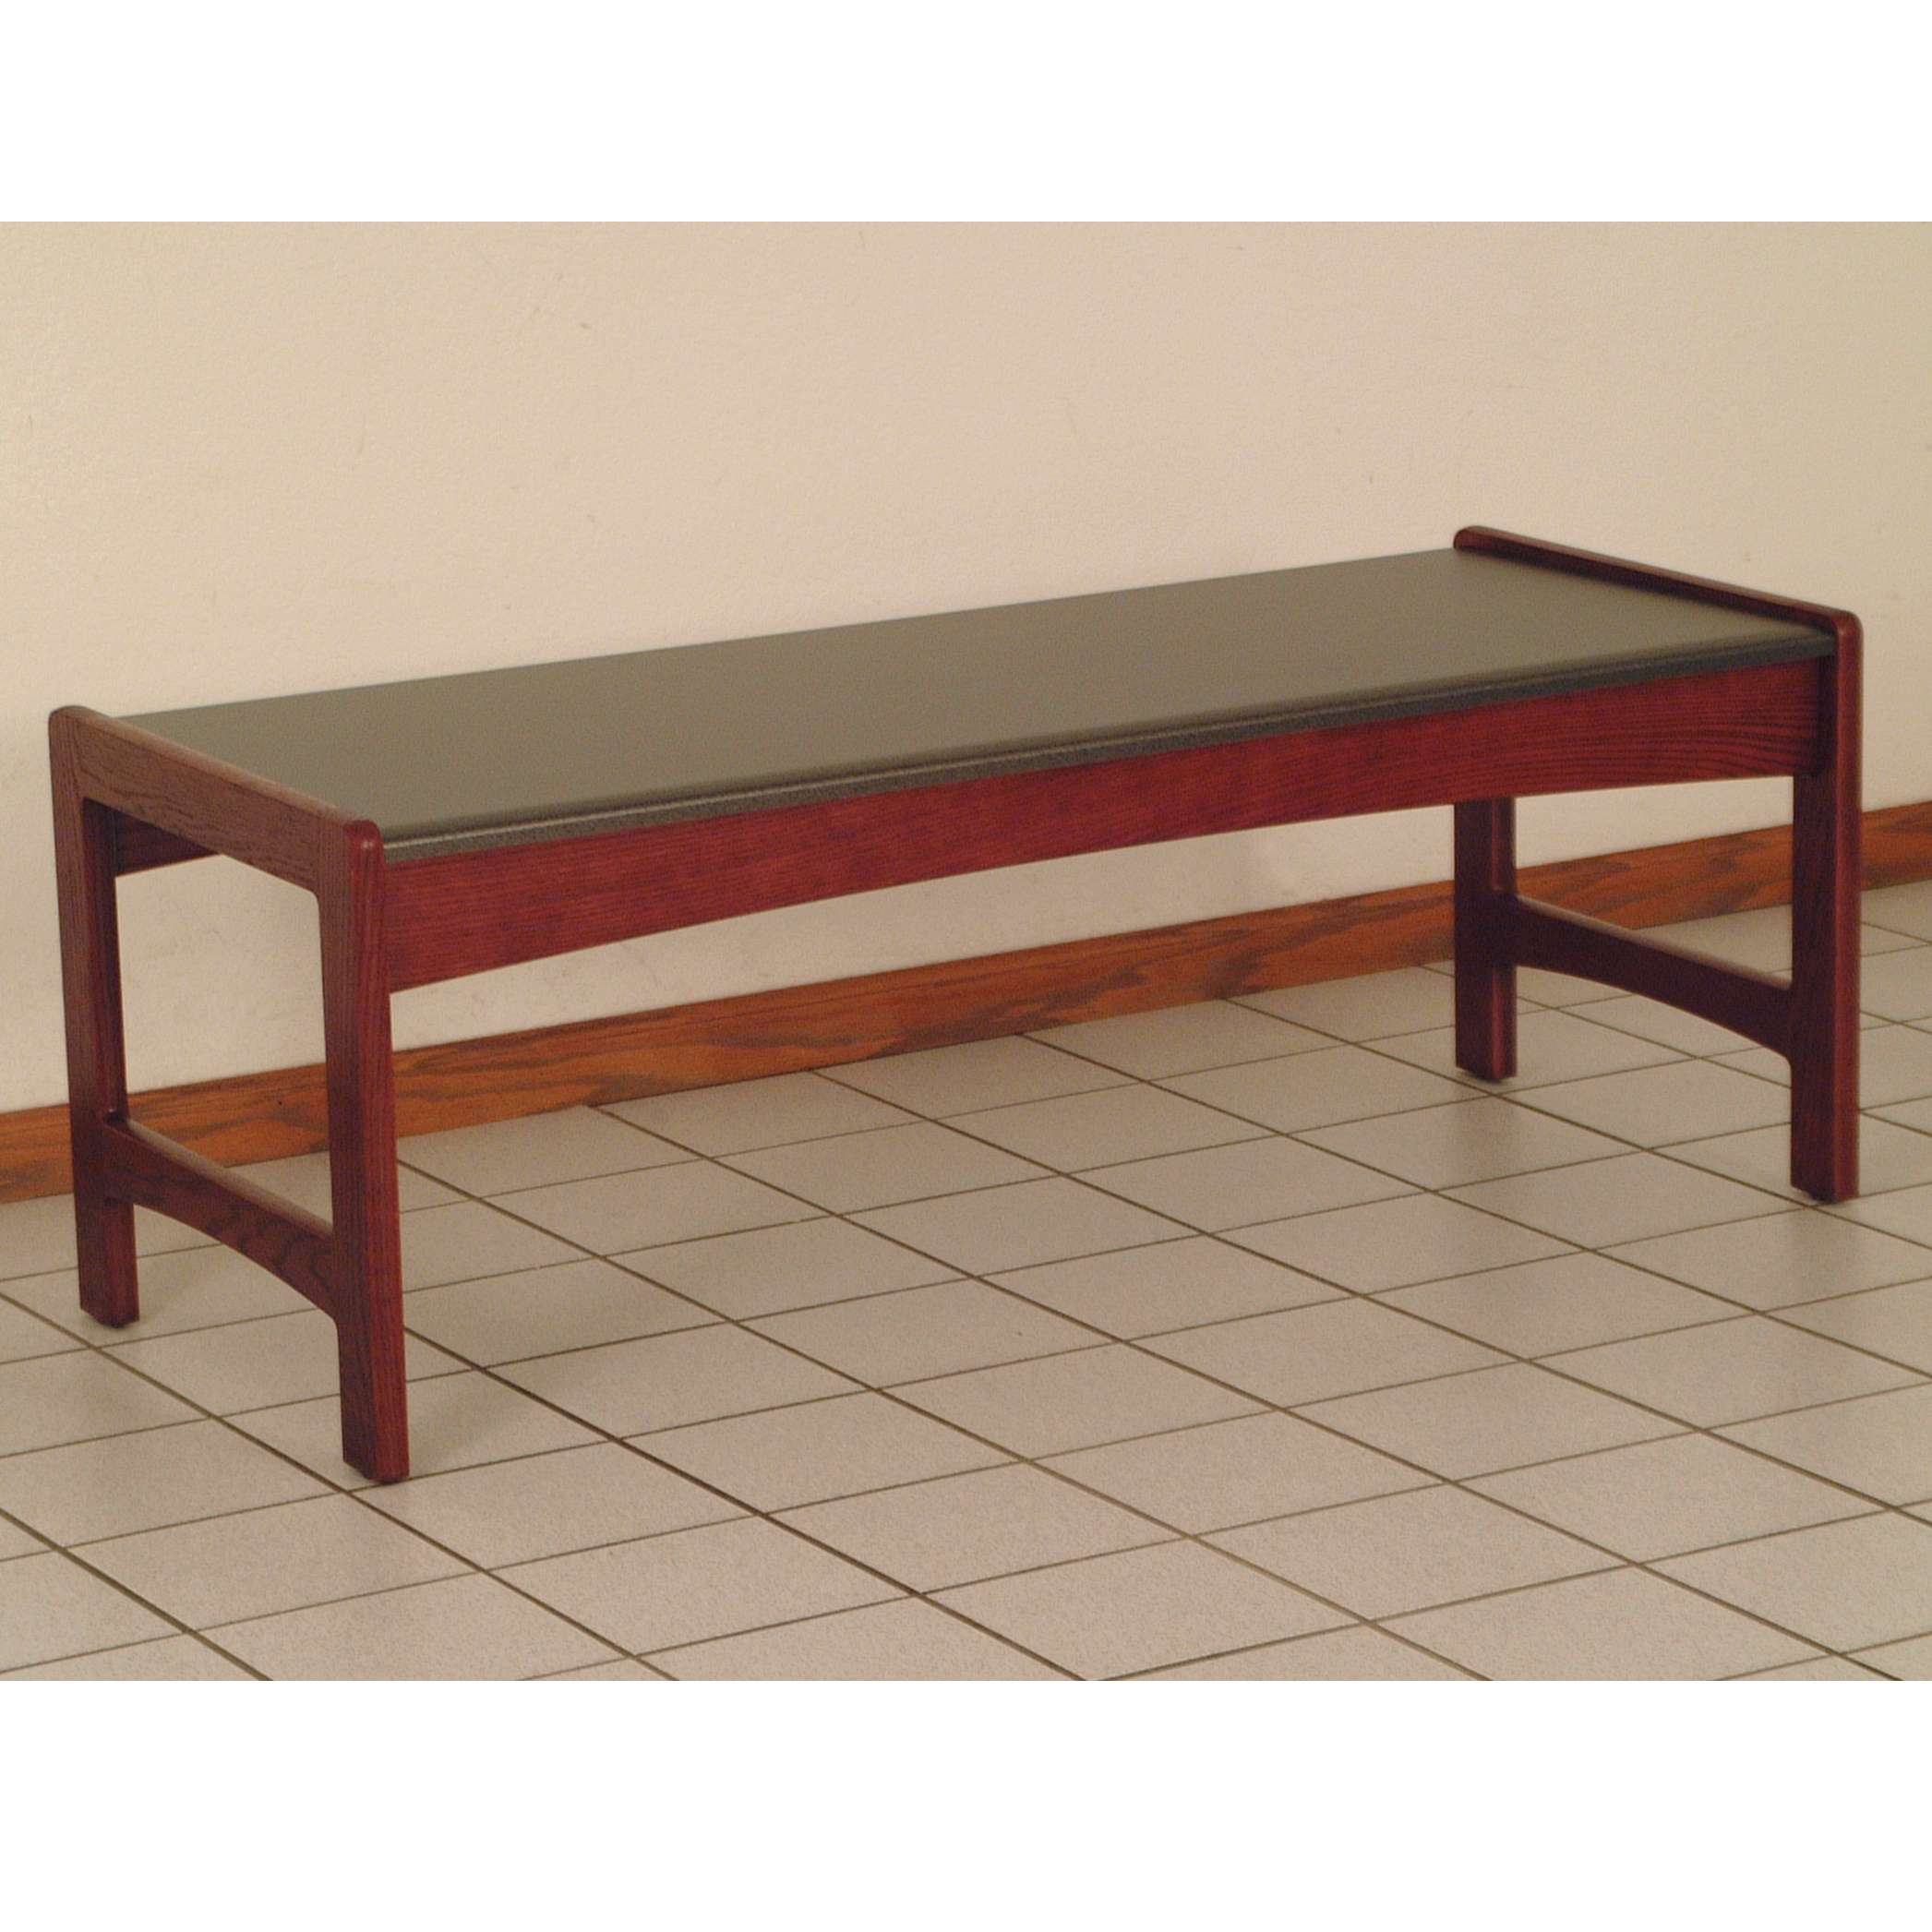 Delicieux Mahogany Coffee Table With Black Granite Look Top